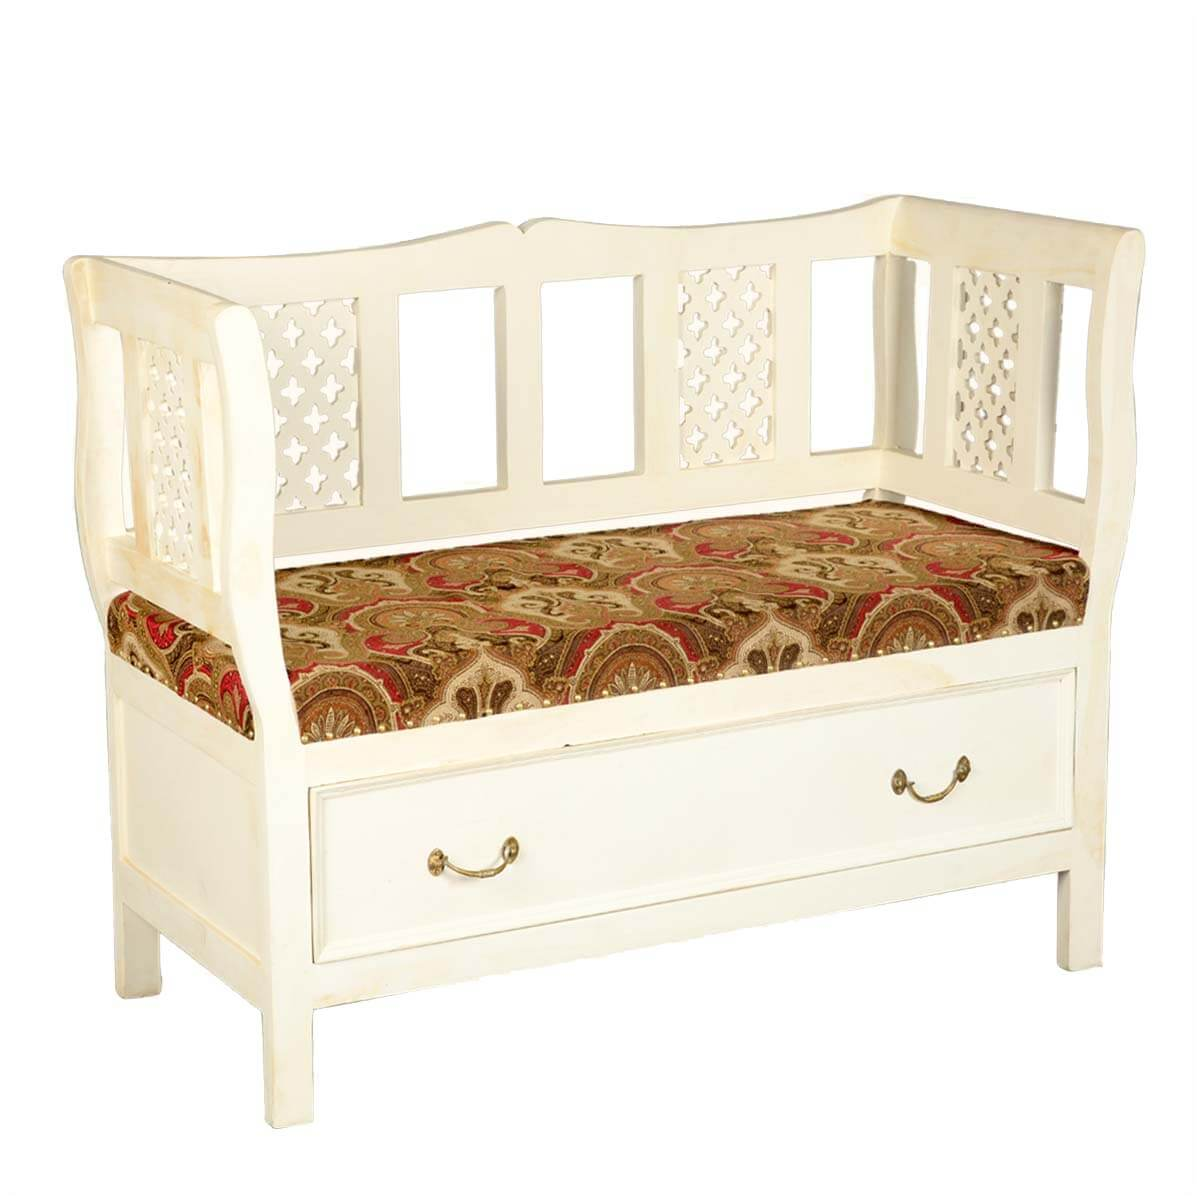 sofa with storage india cute sofas for sale solid hardwood and fabric upholstered white bench